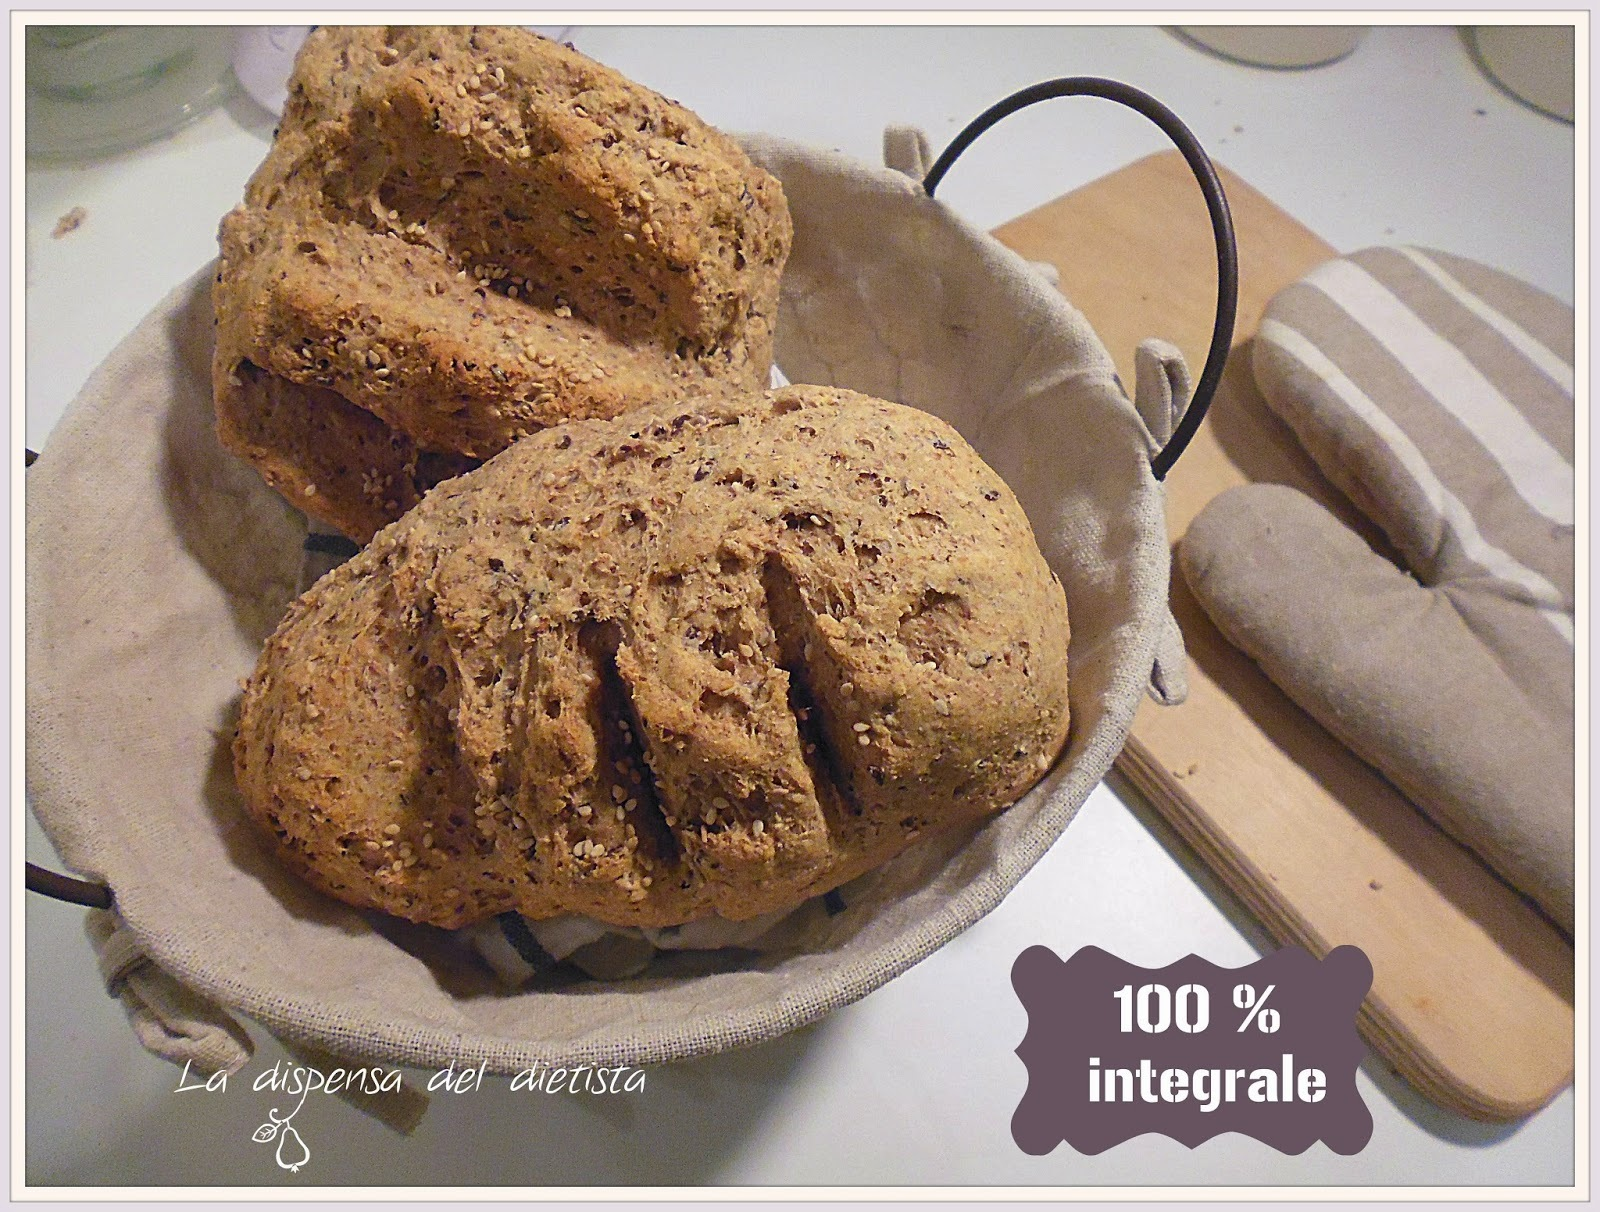 Pane integrale e ai semi fatto in casa